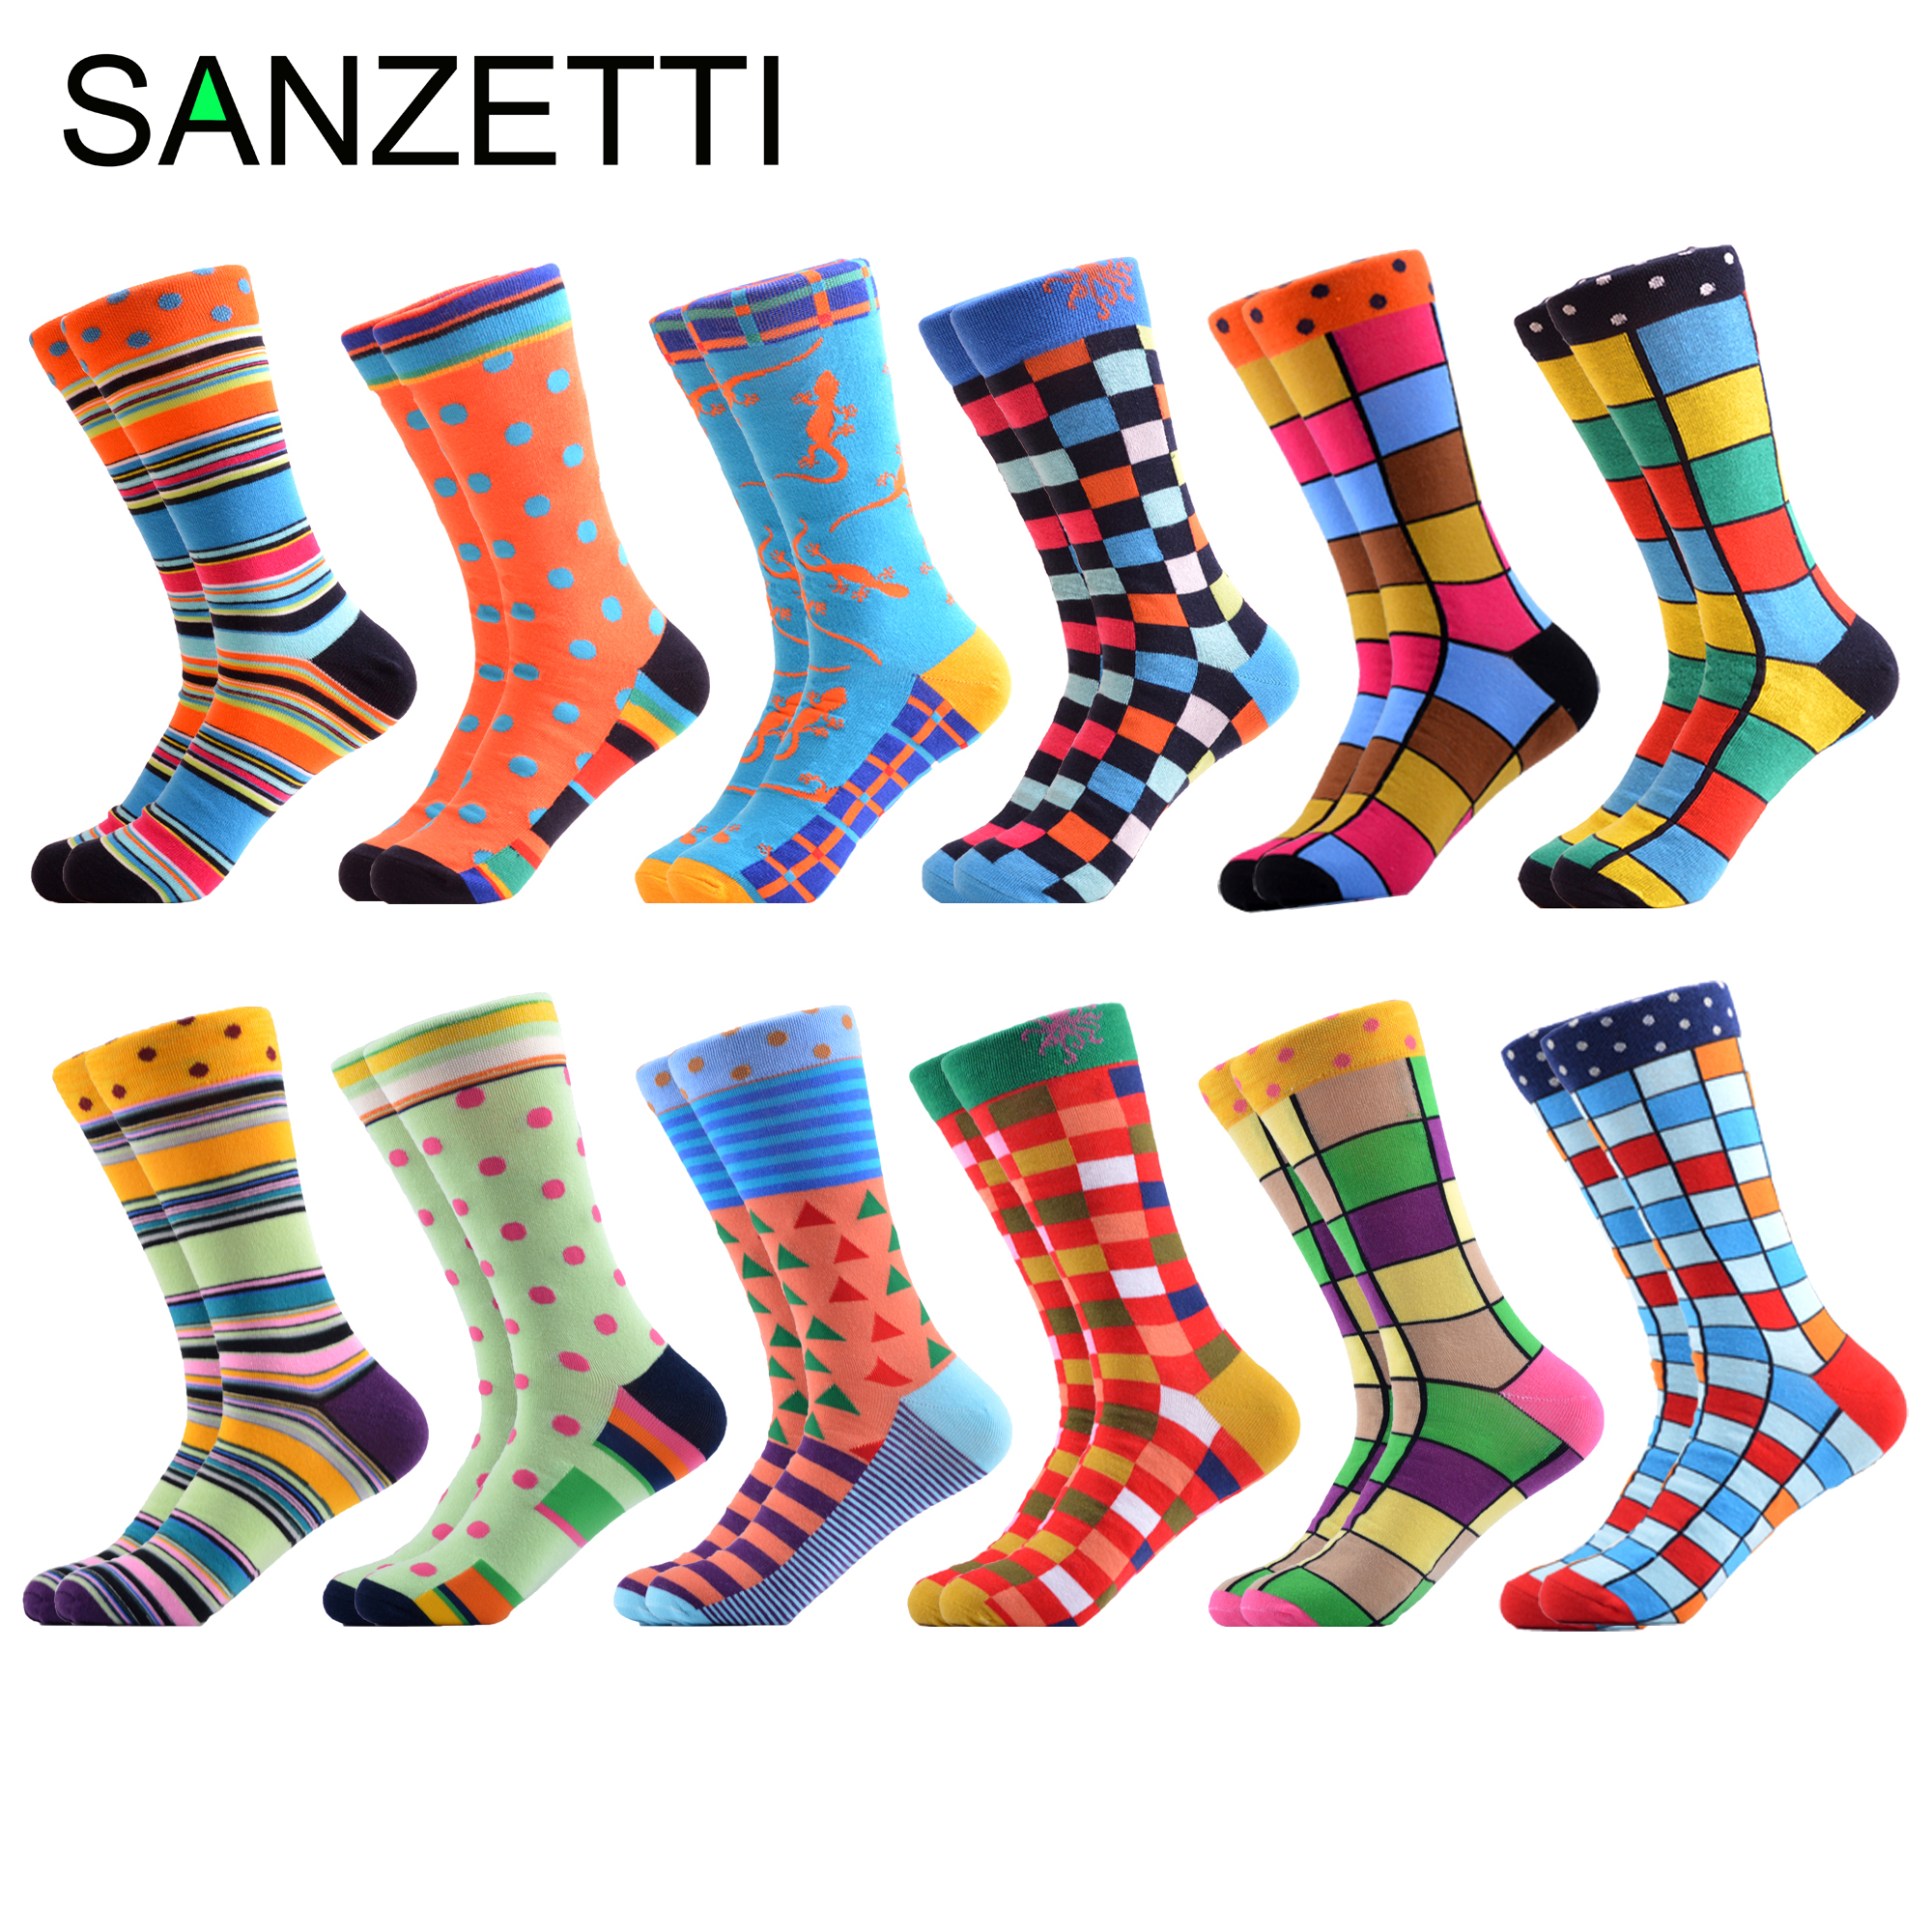 SANZETTI Men Colorful Casual Crew Socks Combed Cotton Design Harajuku Socks Hip Hop Geometric Plaid Stripe Dot Gifts Happy Socks